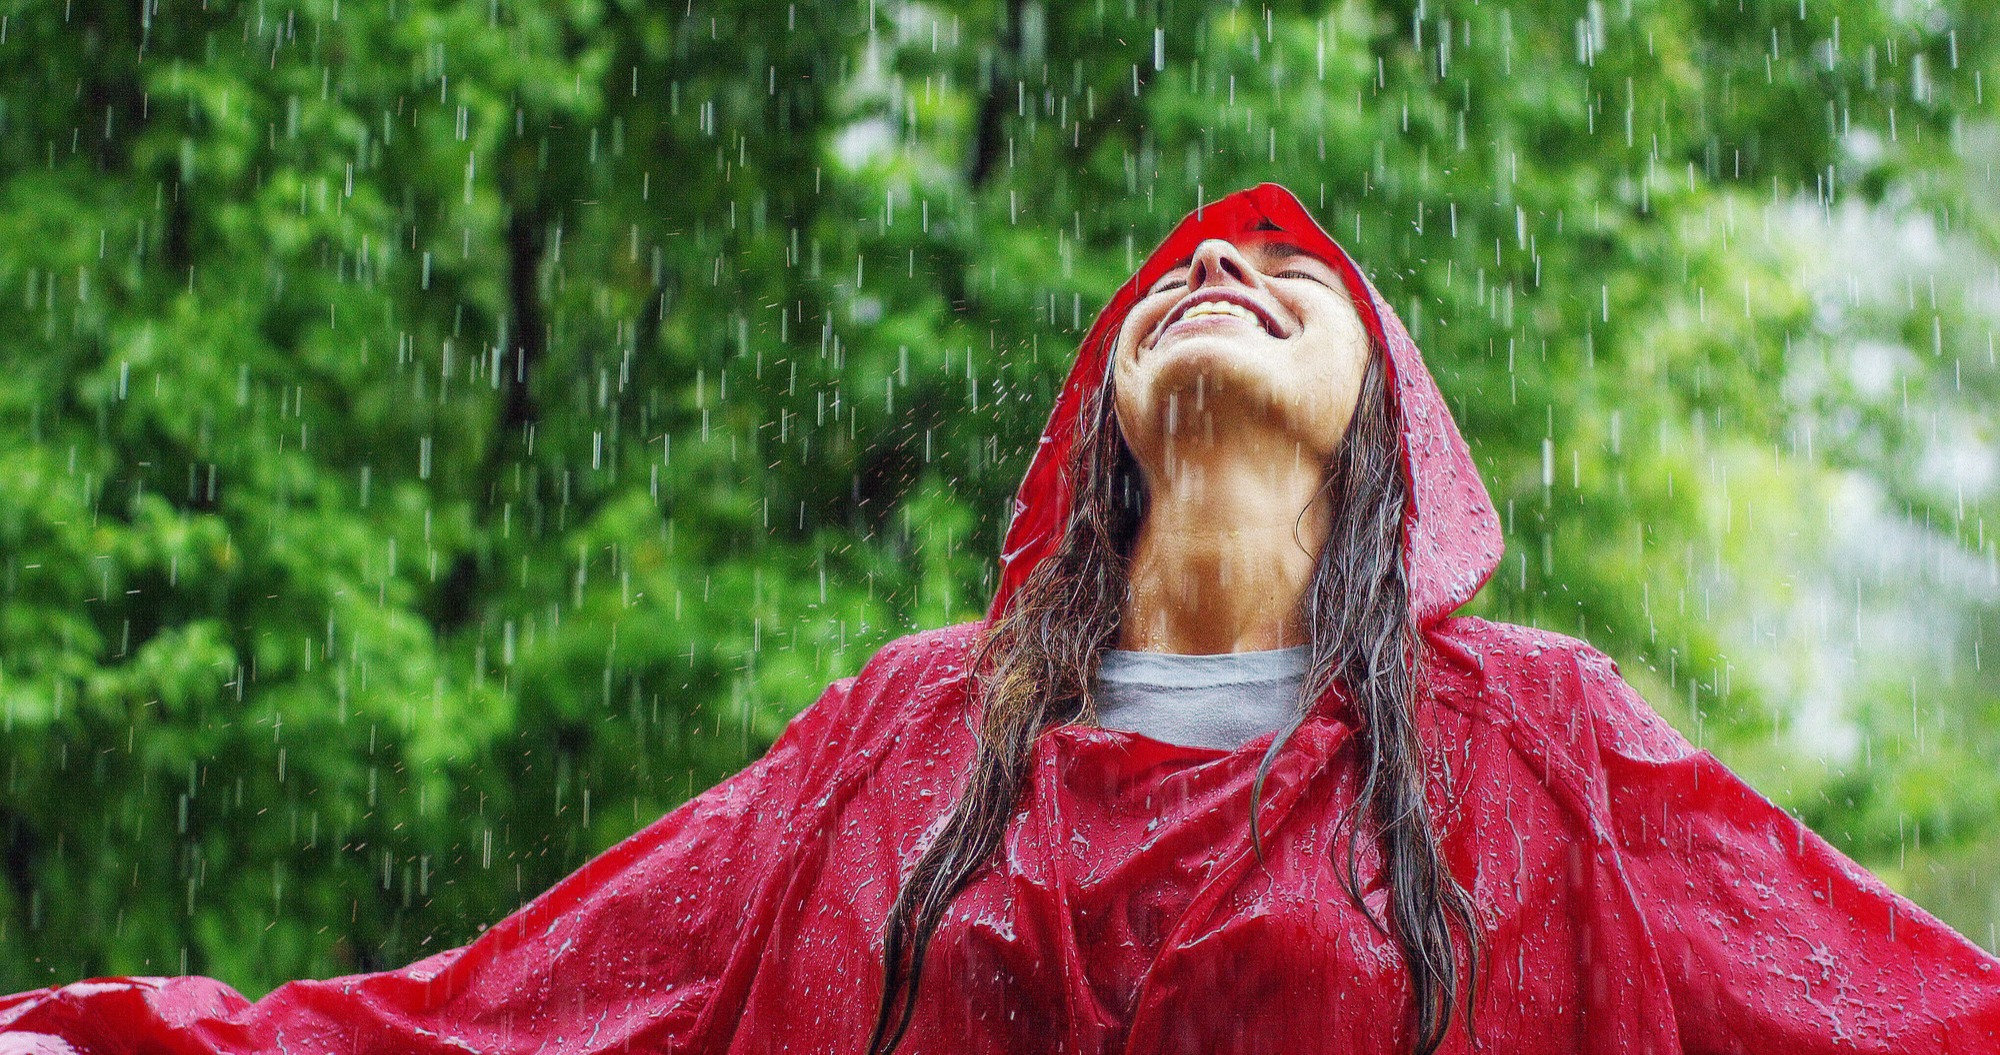 Prepare for Rain After Dry Summers or Drought